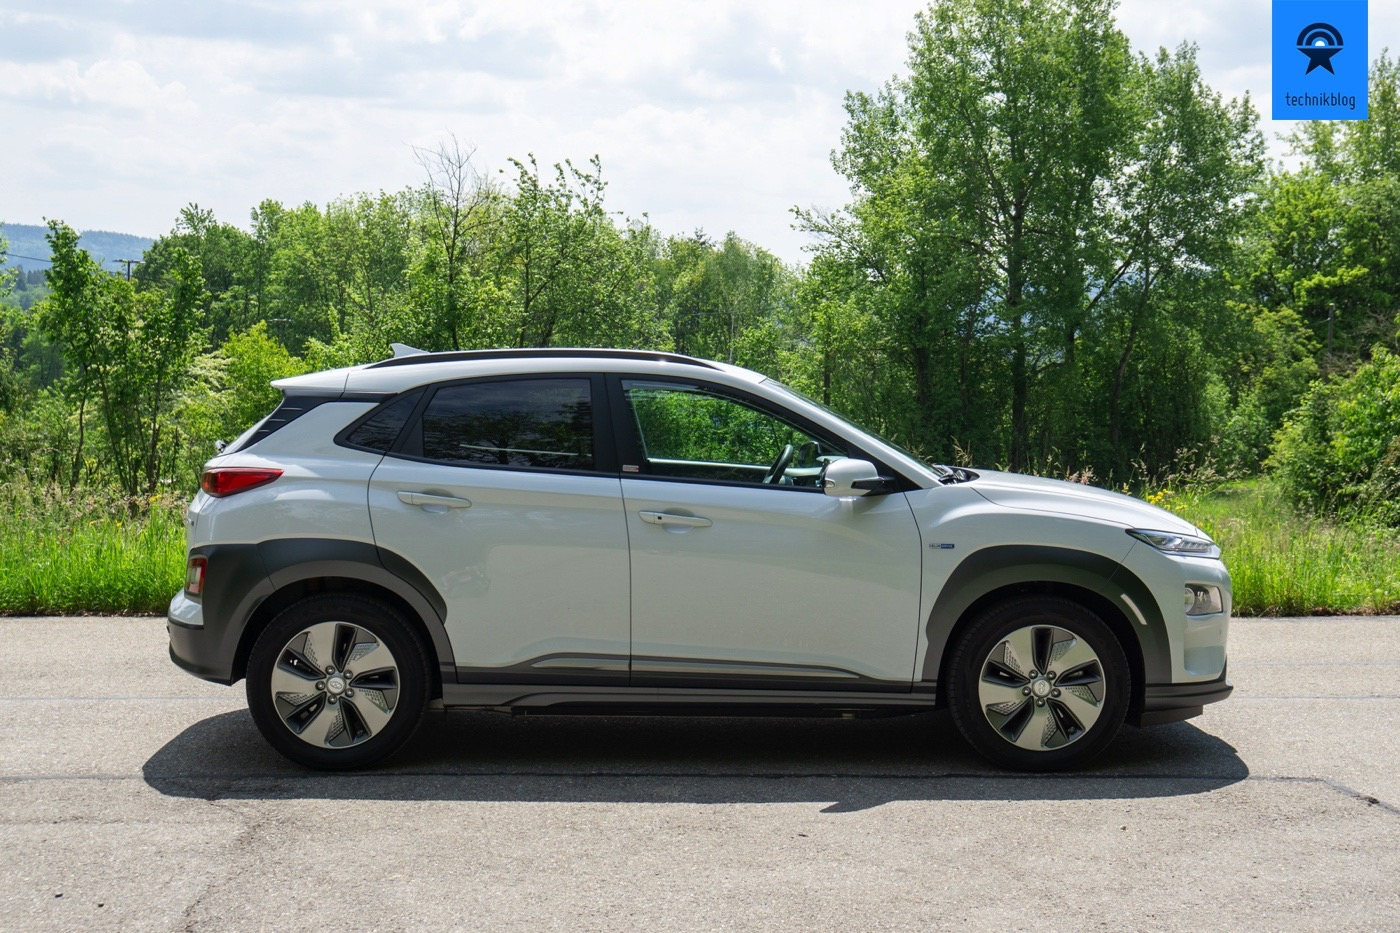 Elektrischer Mini-SUV: Hyundai Kona electric